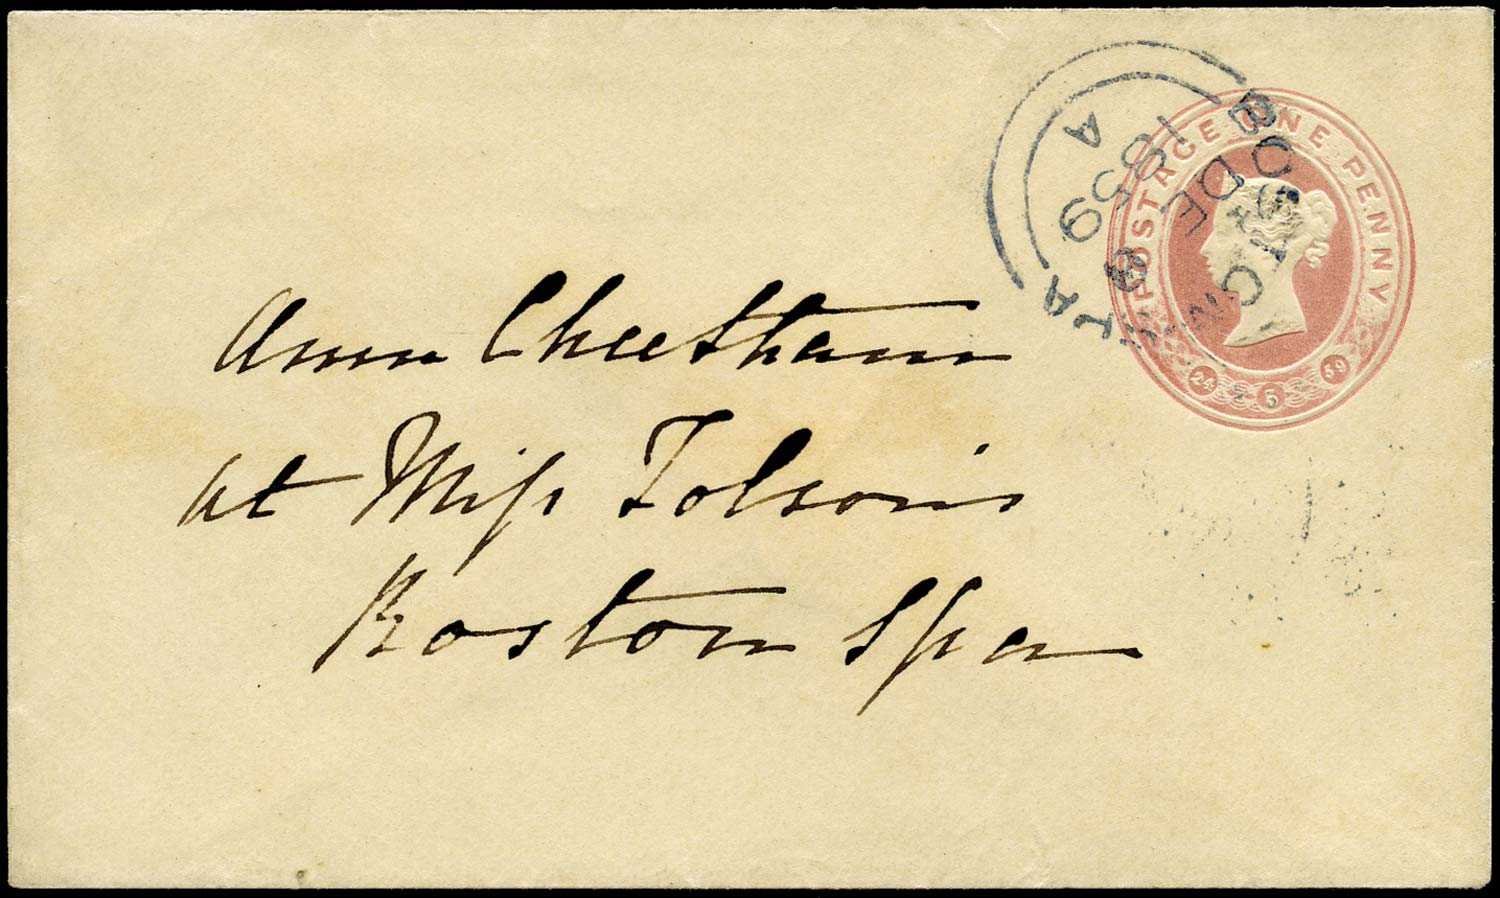 GB 1859 Postal Stationery 1d Pink Envelope, Boston Spa blue cds